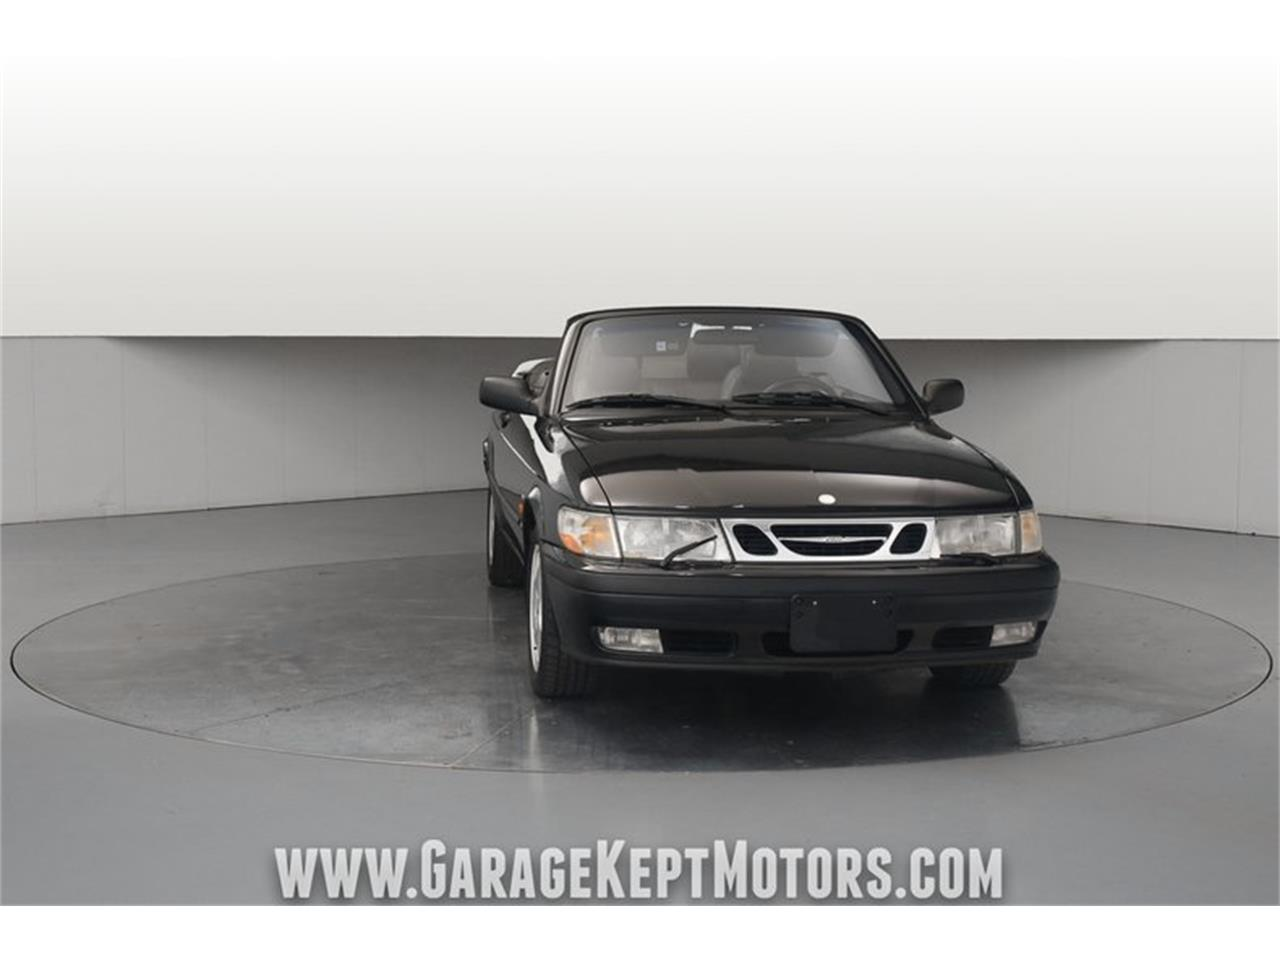 1999 Saab 9-3 for sale in Grand Rapids, MI – photo 16